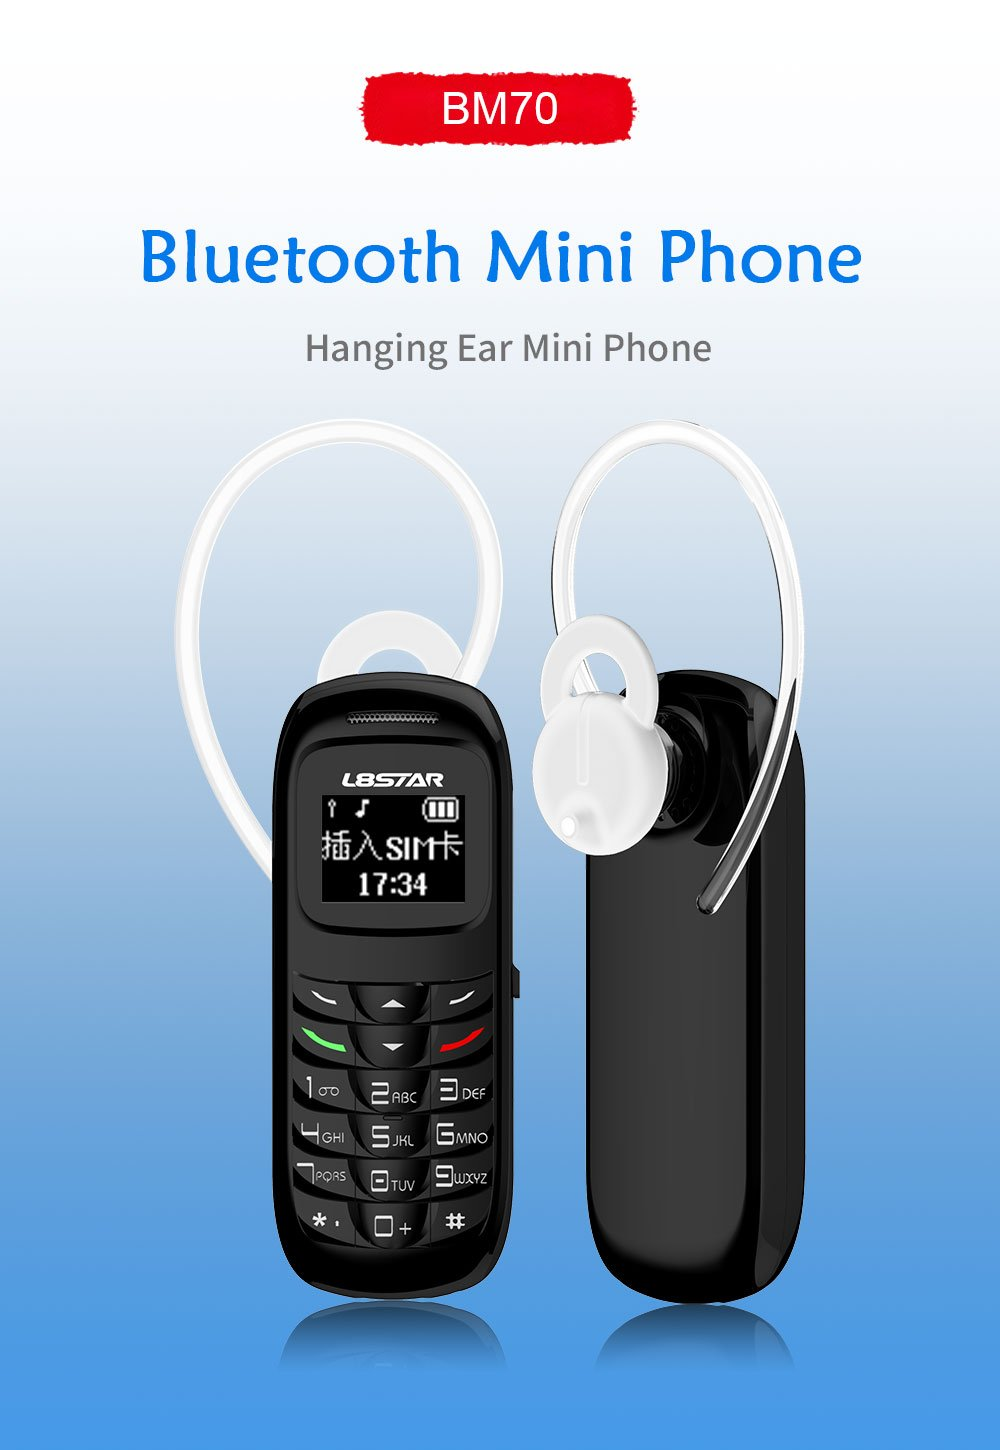 Mini Pocket Cellphone - Handy Treat